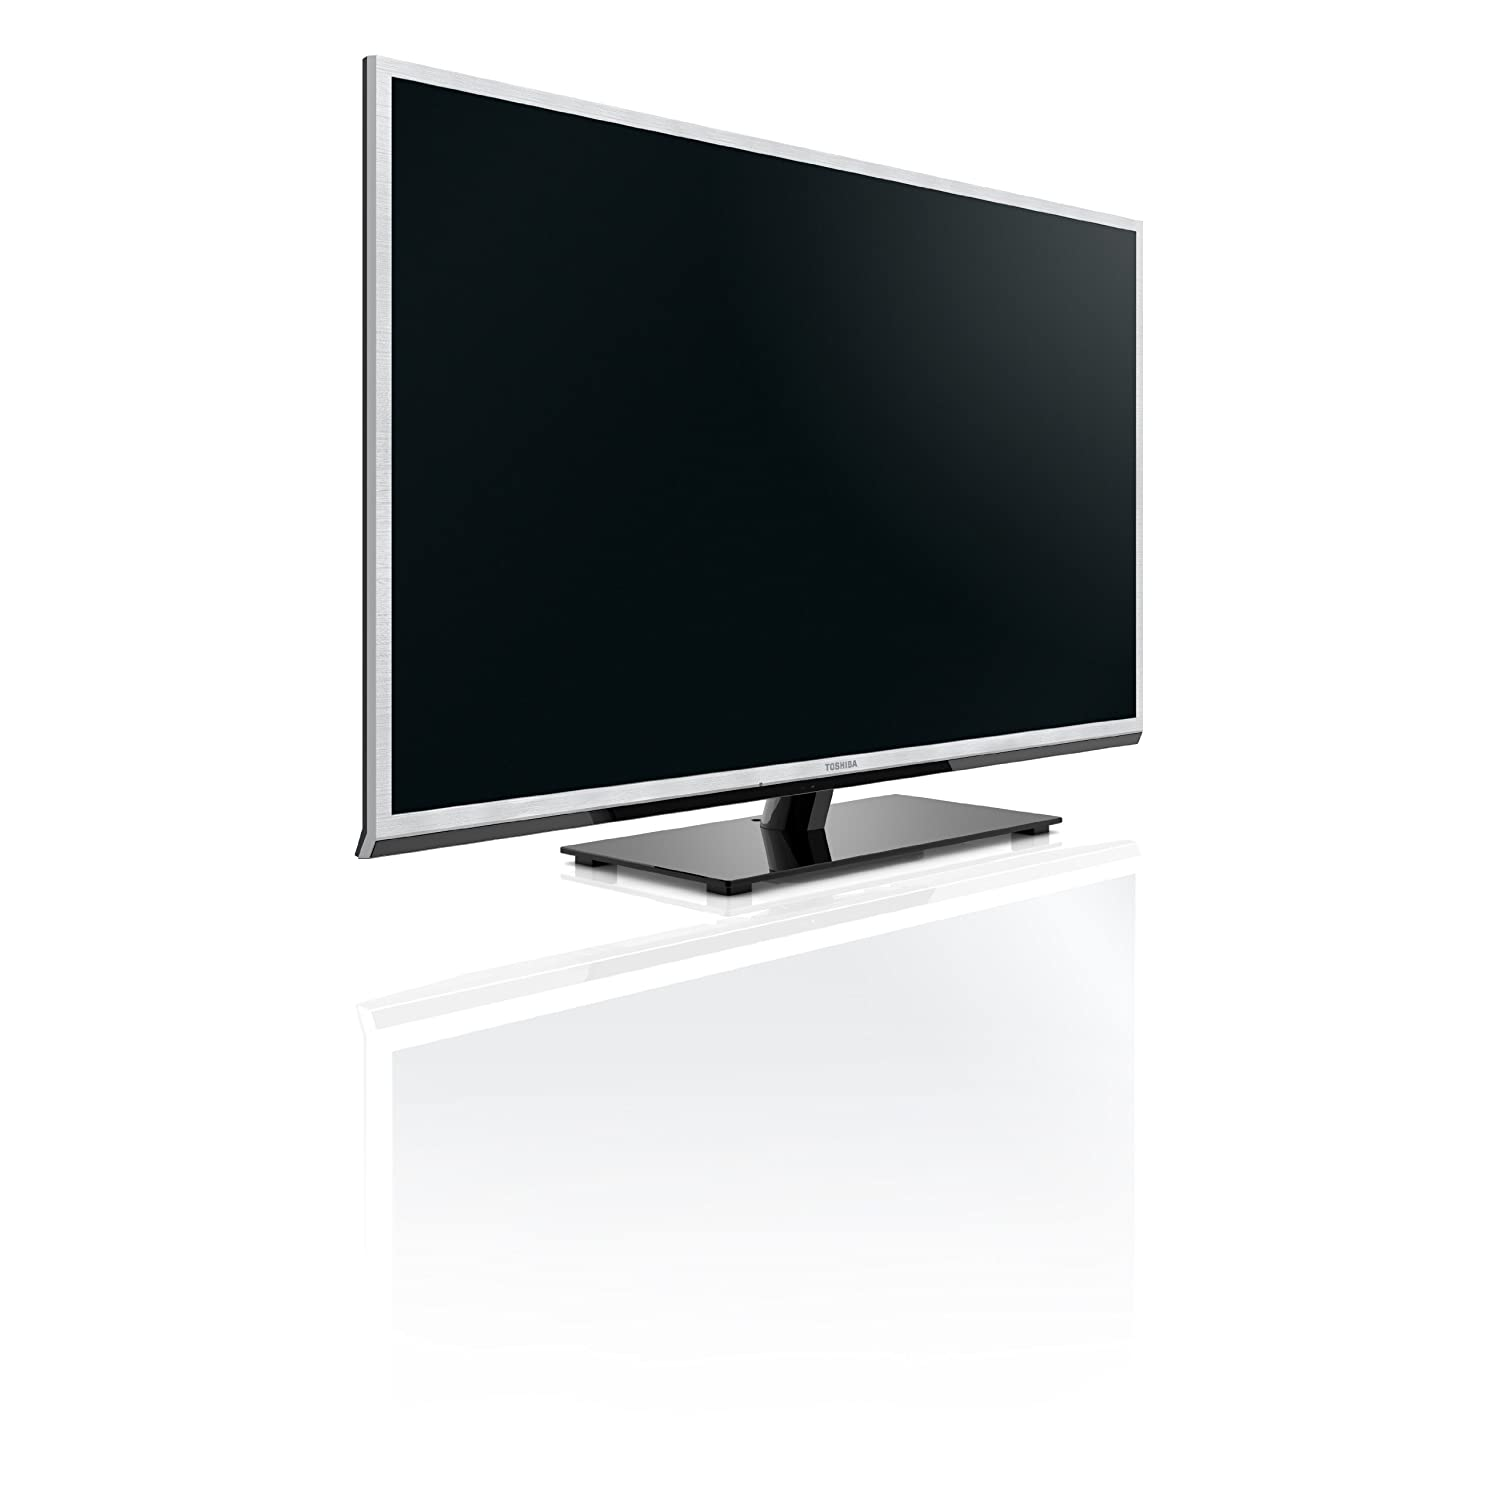 toshiba 46tl938g 116 8 cm 46 zoll 3d led backlight. Black Bedroom Furniture Sets. Home Design Ideas